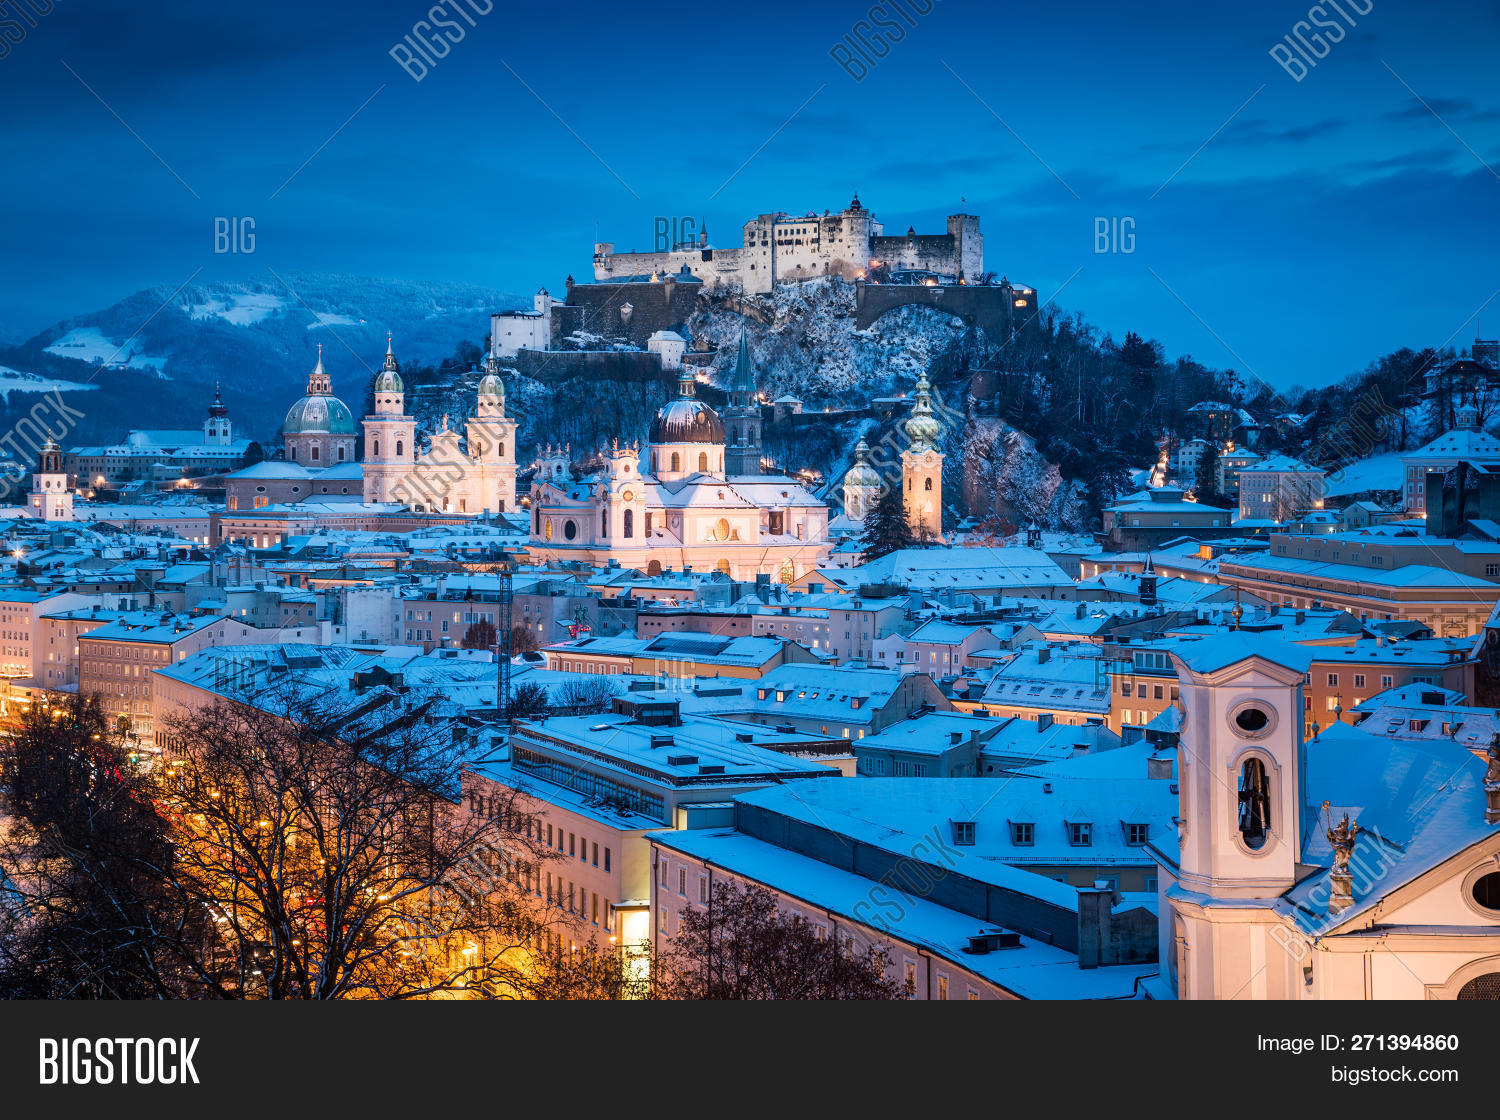 advent,adventmarkt,alps,altstadt,architecture,austria,austrian,baroque,beautiful,blue,buildings,castle,cathedral,christkindlmarkt,christmas,church,city,cityscape,dusk,europe,evening,festung,fortress,historic,hohensalzburg,holidays,hour,illuminated,land,landmark,landscape,lights,medieval,mozart,night,old,panorama,salzburg,salzburger,sky,skyline,snow,sunset,tourism,town,travel,twilight,vacation,view,winter